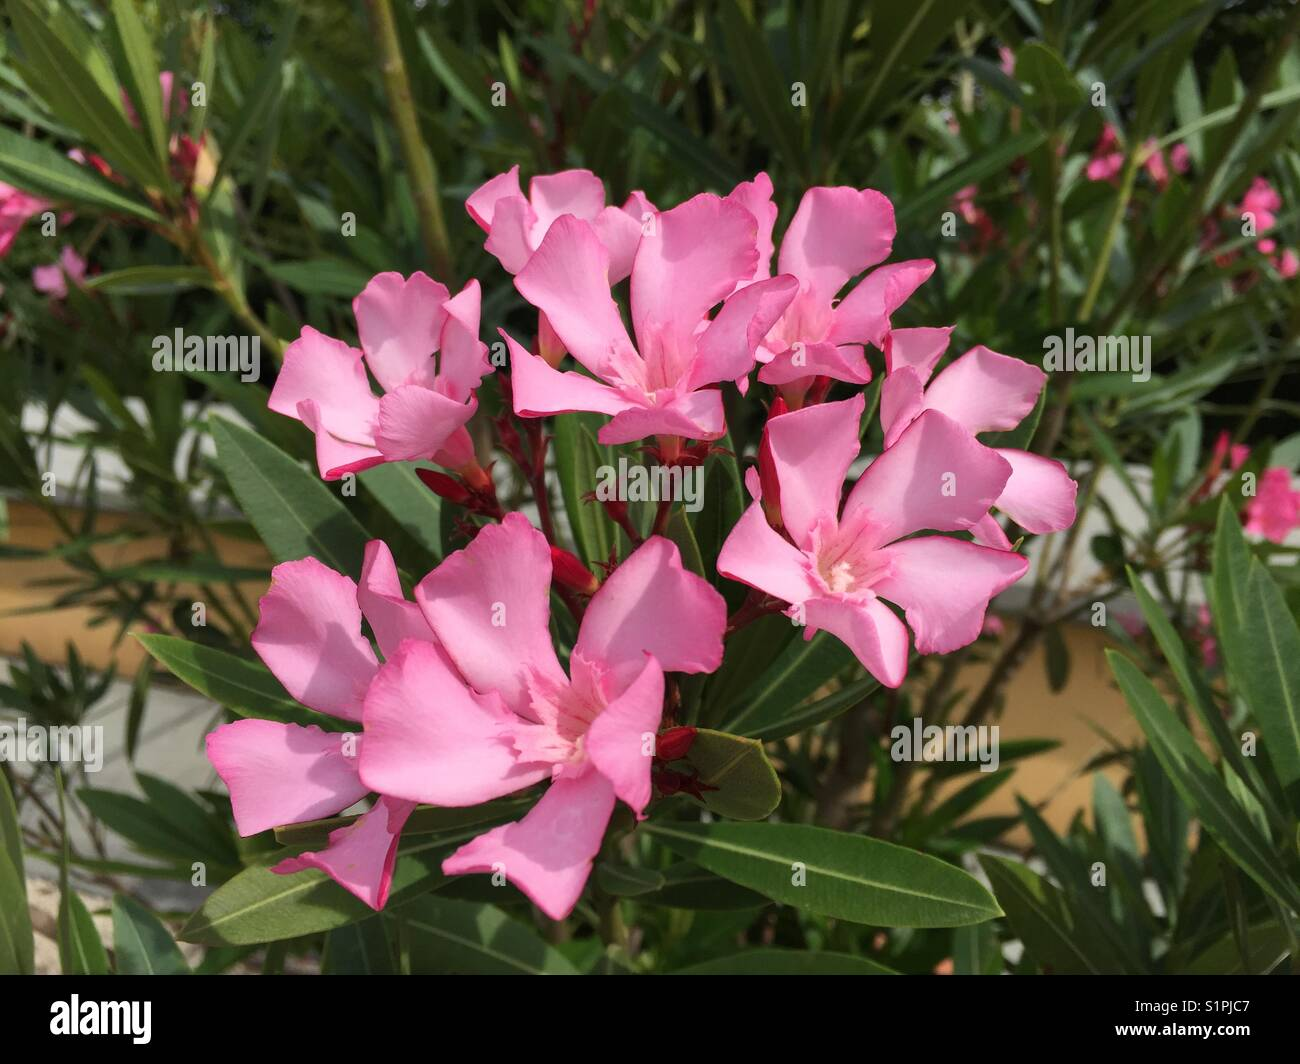 Nerium oleander group of mid to light pink oleander flowers held nerium oleander group of mid to light pink oleander flowers held upwards on stem against a green leafy oleander bush mightylinksfo